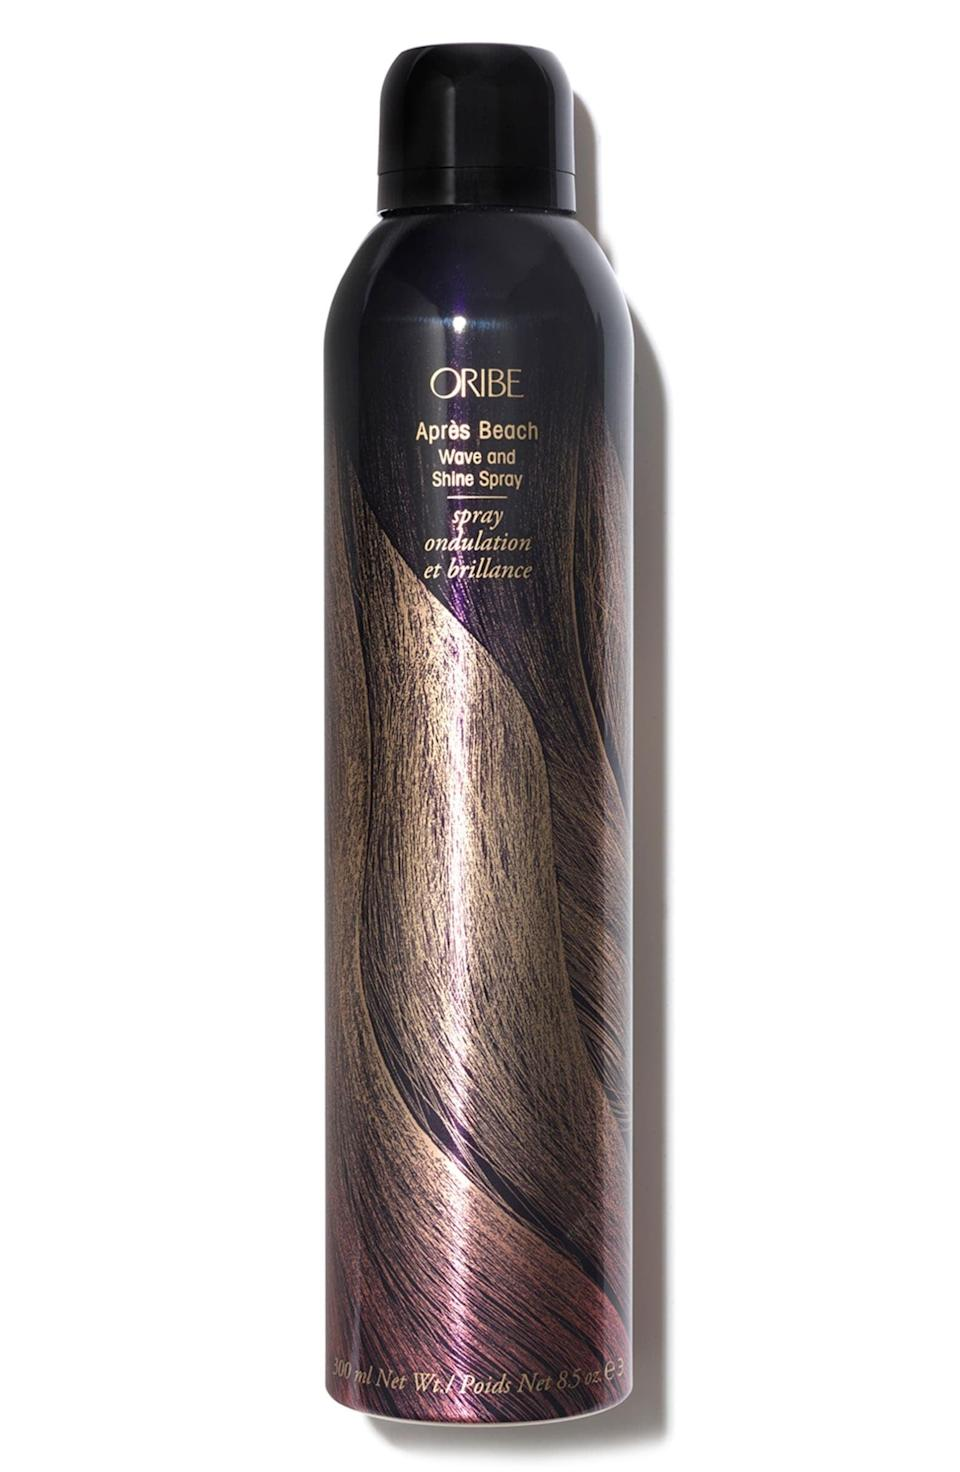 <p>Get gorgeous beachy waves and texture with this <span>Oribe Après Beach Wave and Shine Spray</span> ($23–$44). It will give your hair weightless movement and volume!</p>